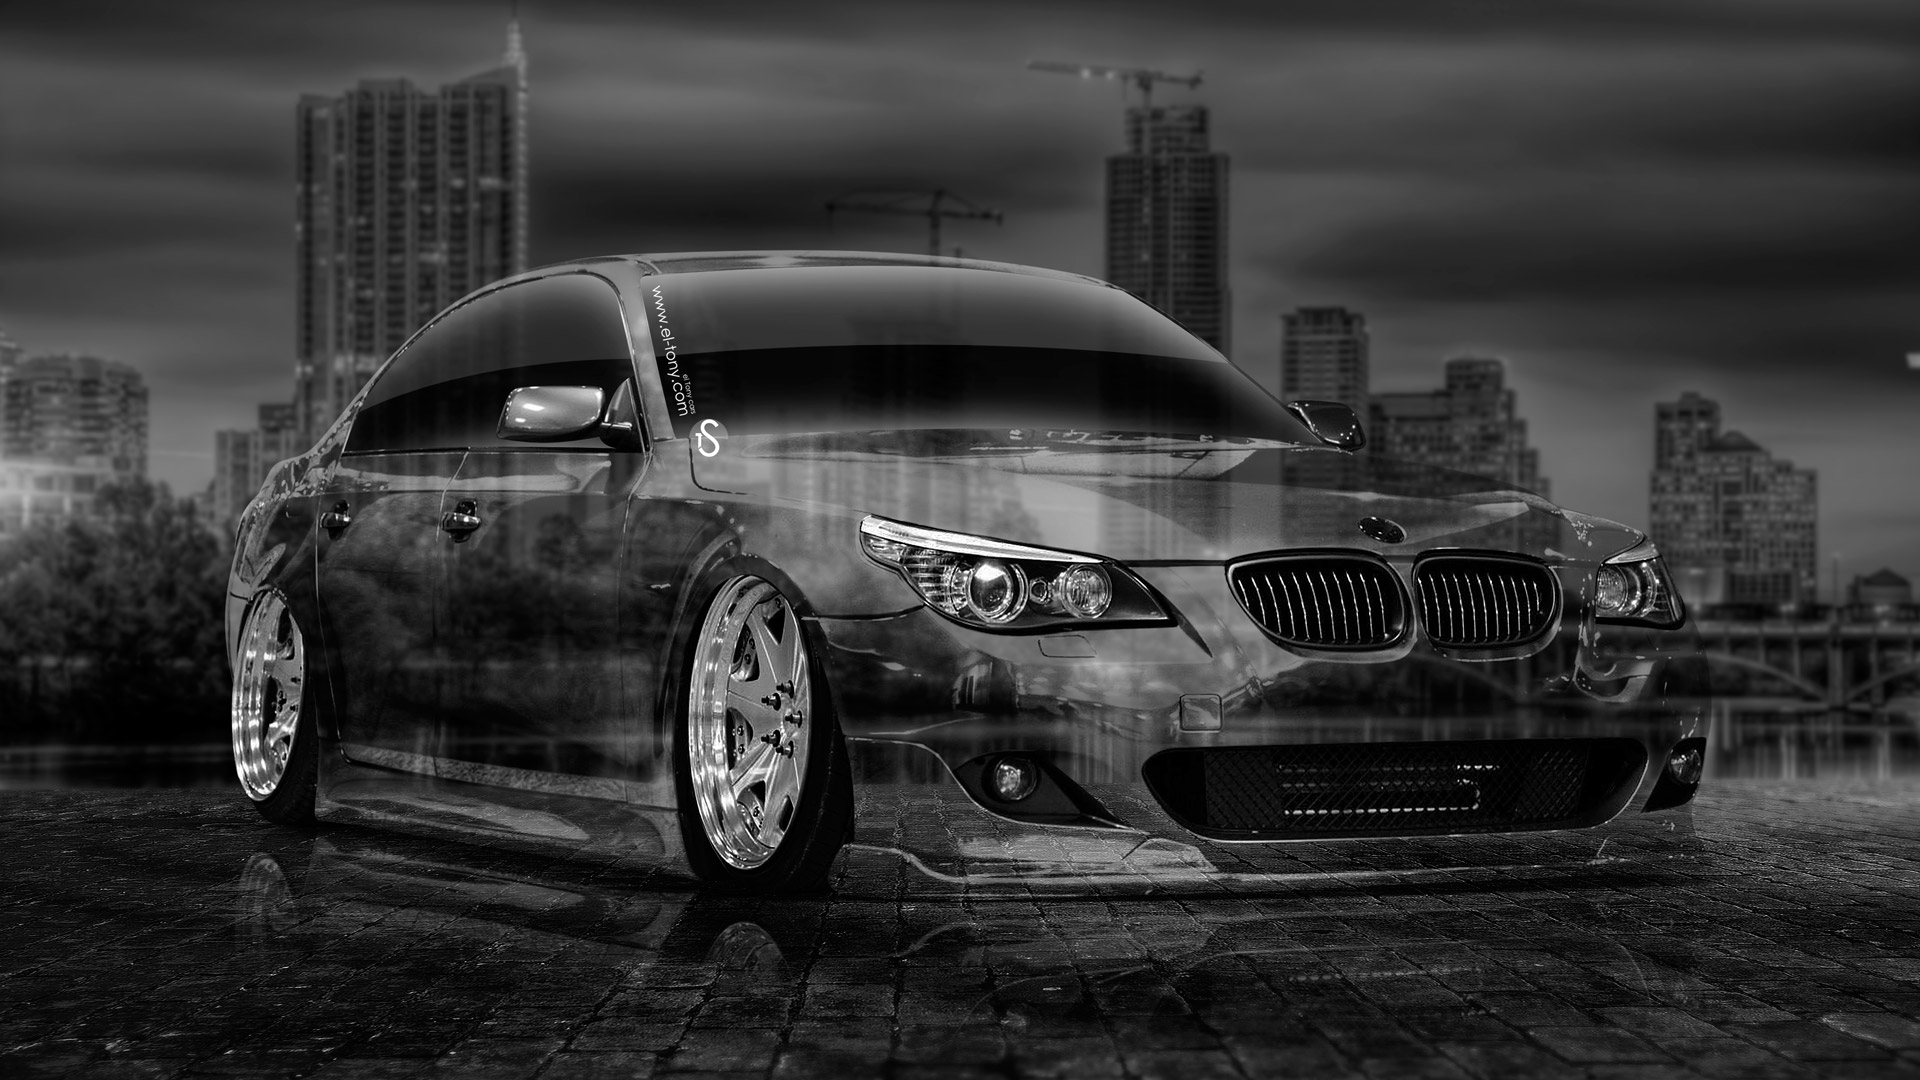 Bmw M5 E60 Tuning Crystal City Car 2014 El Tony El Tony